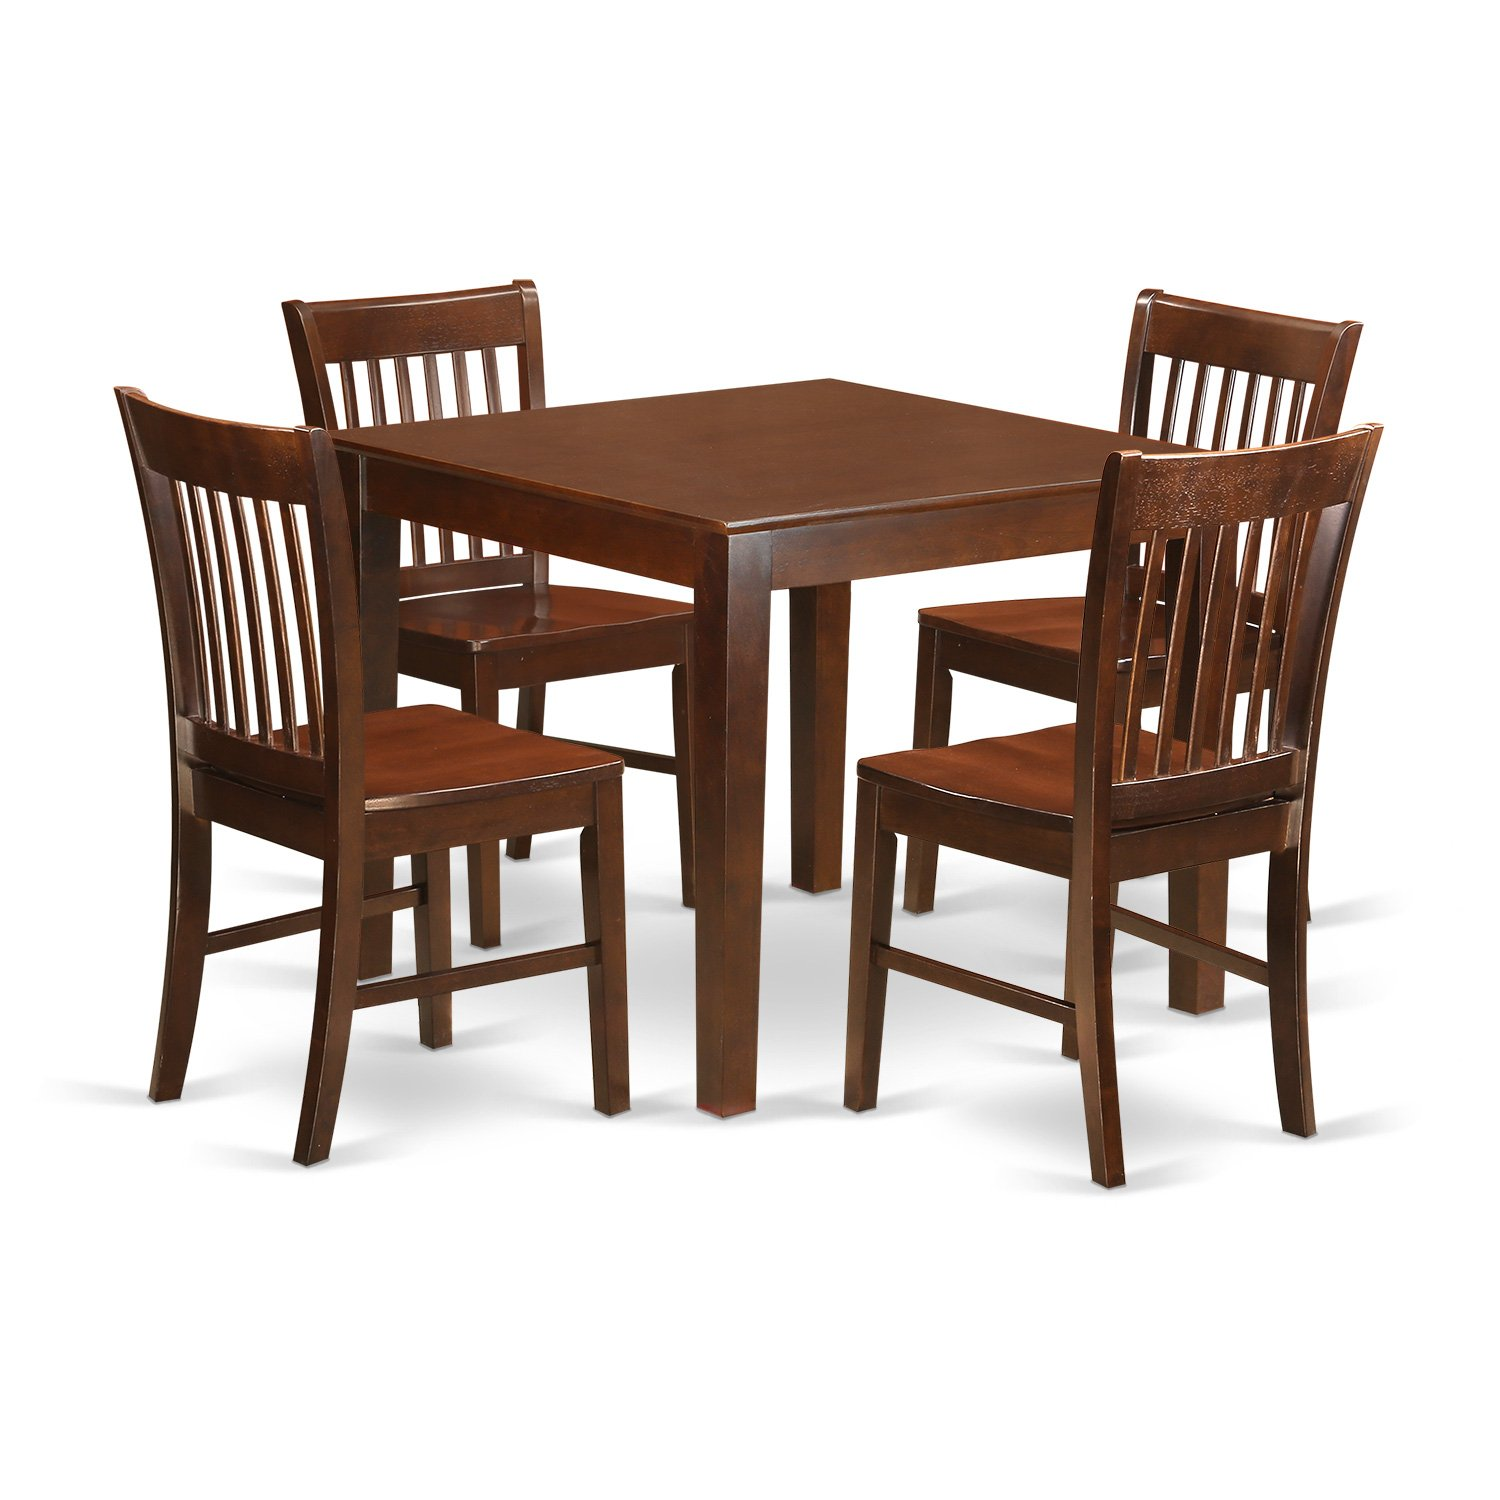 Get Quotations East West Furniture Oxno5 Mah W 5 Pc Kitchen Table Set With A